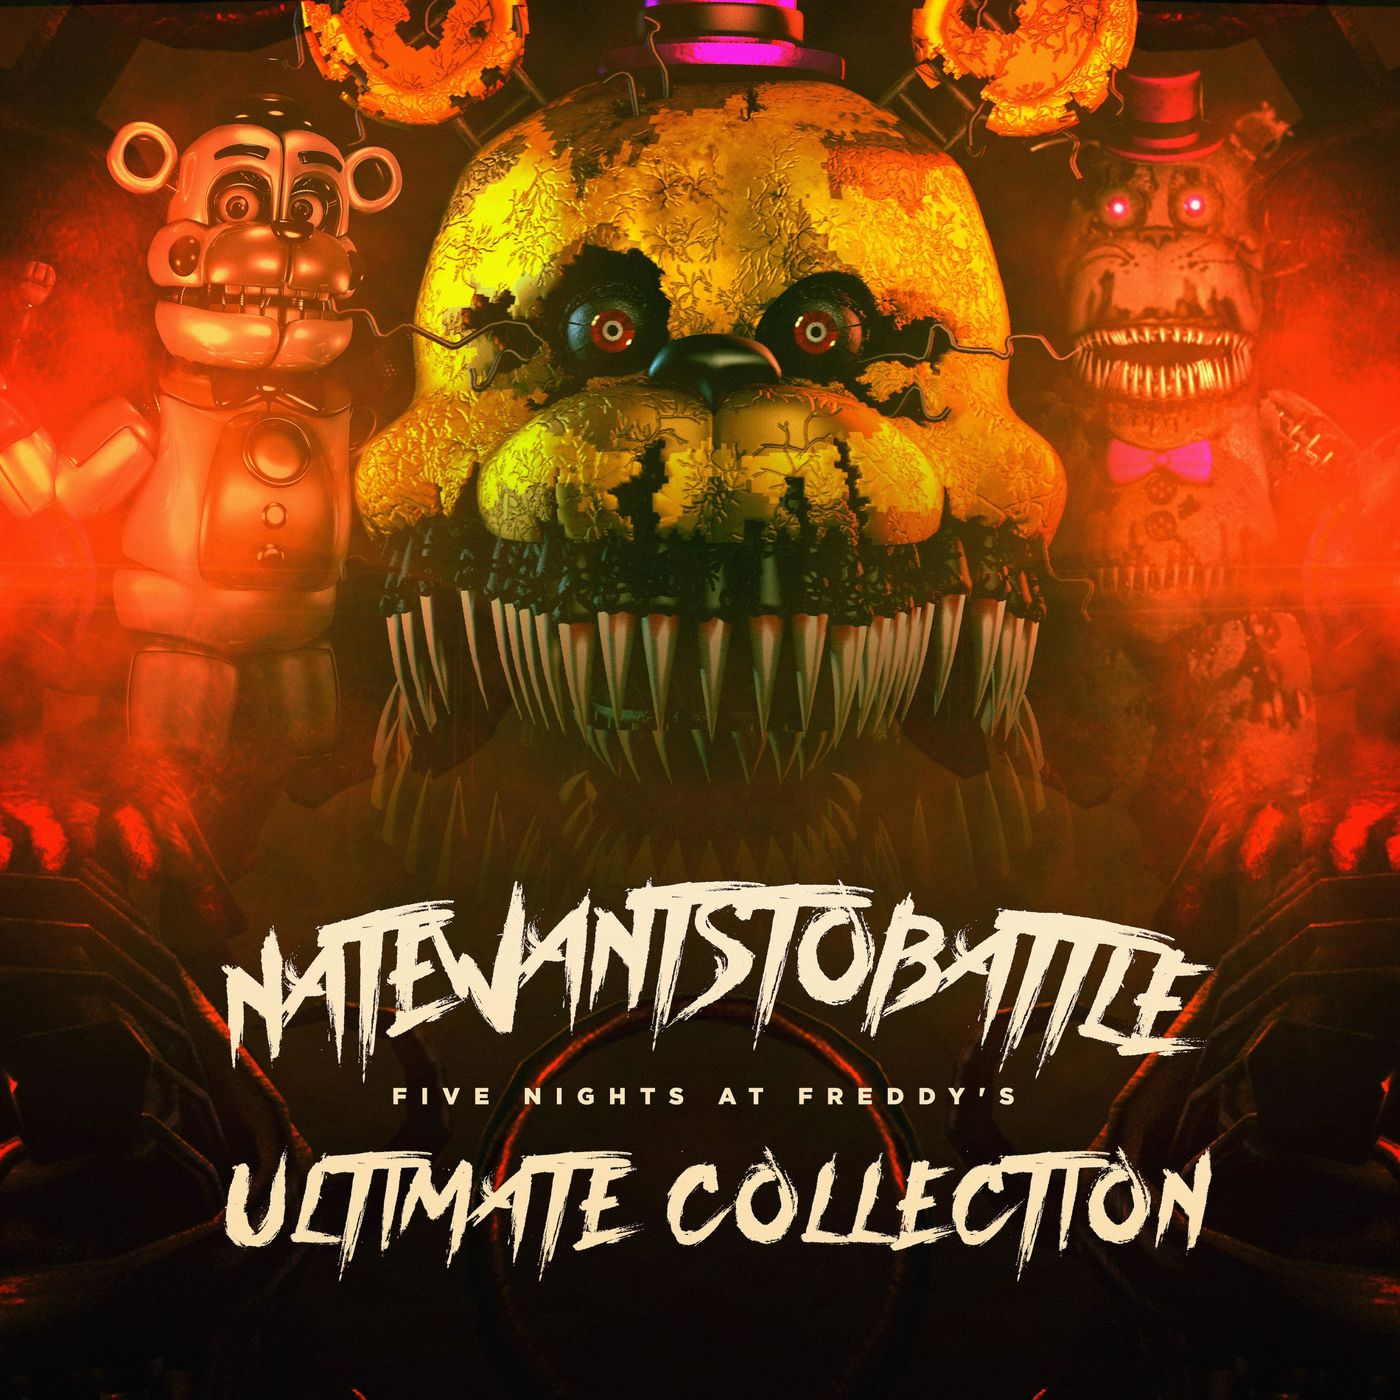 NateWantsToBattle - Five Nights at Freddy's (Ultimate Collection) (2019)